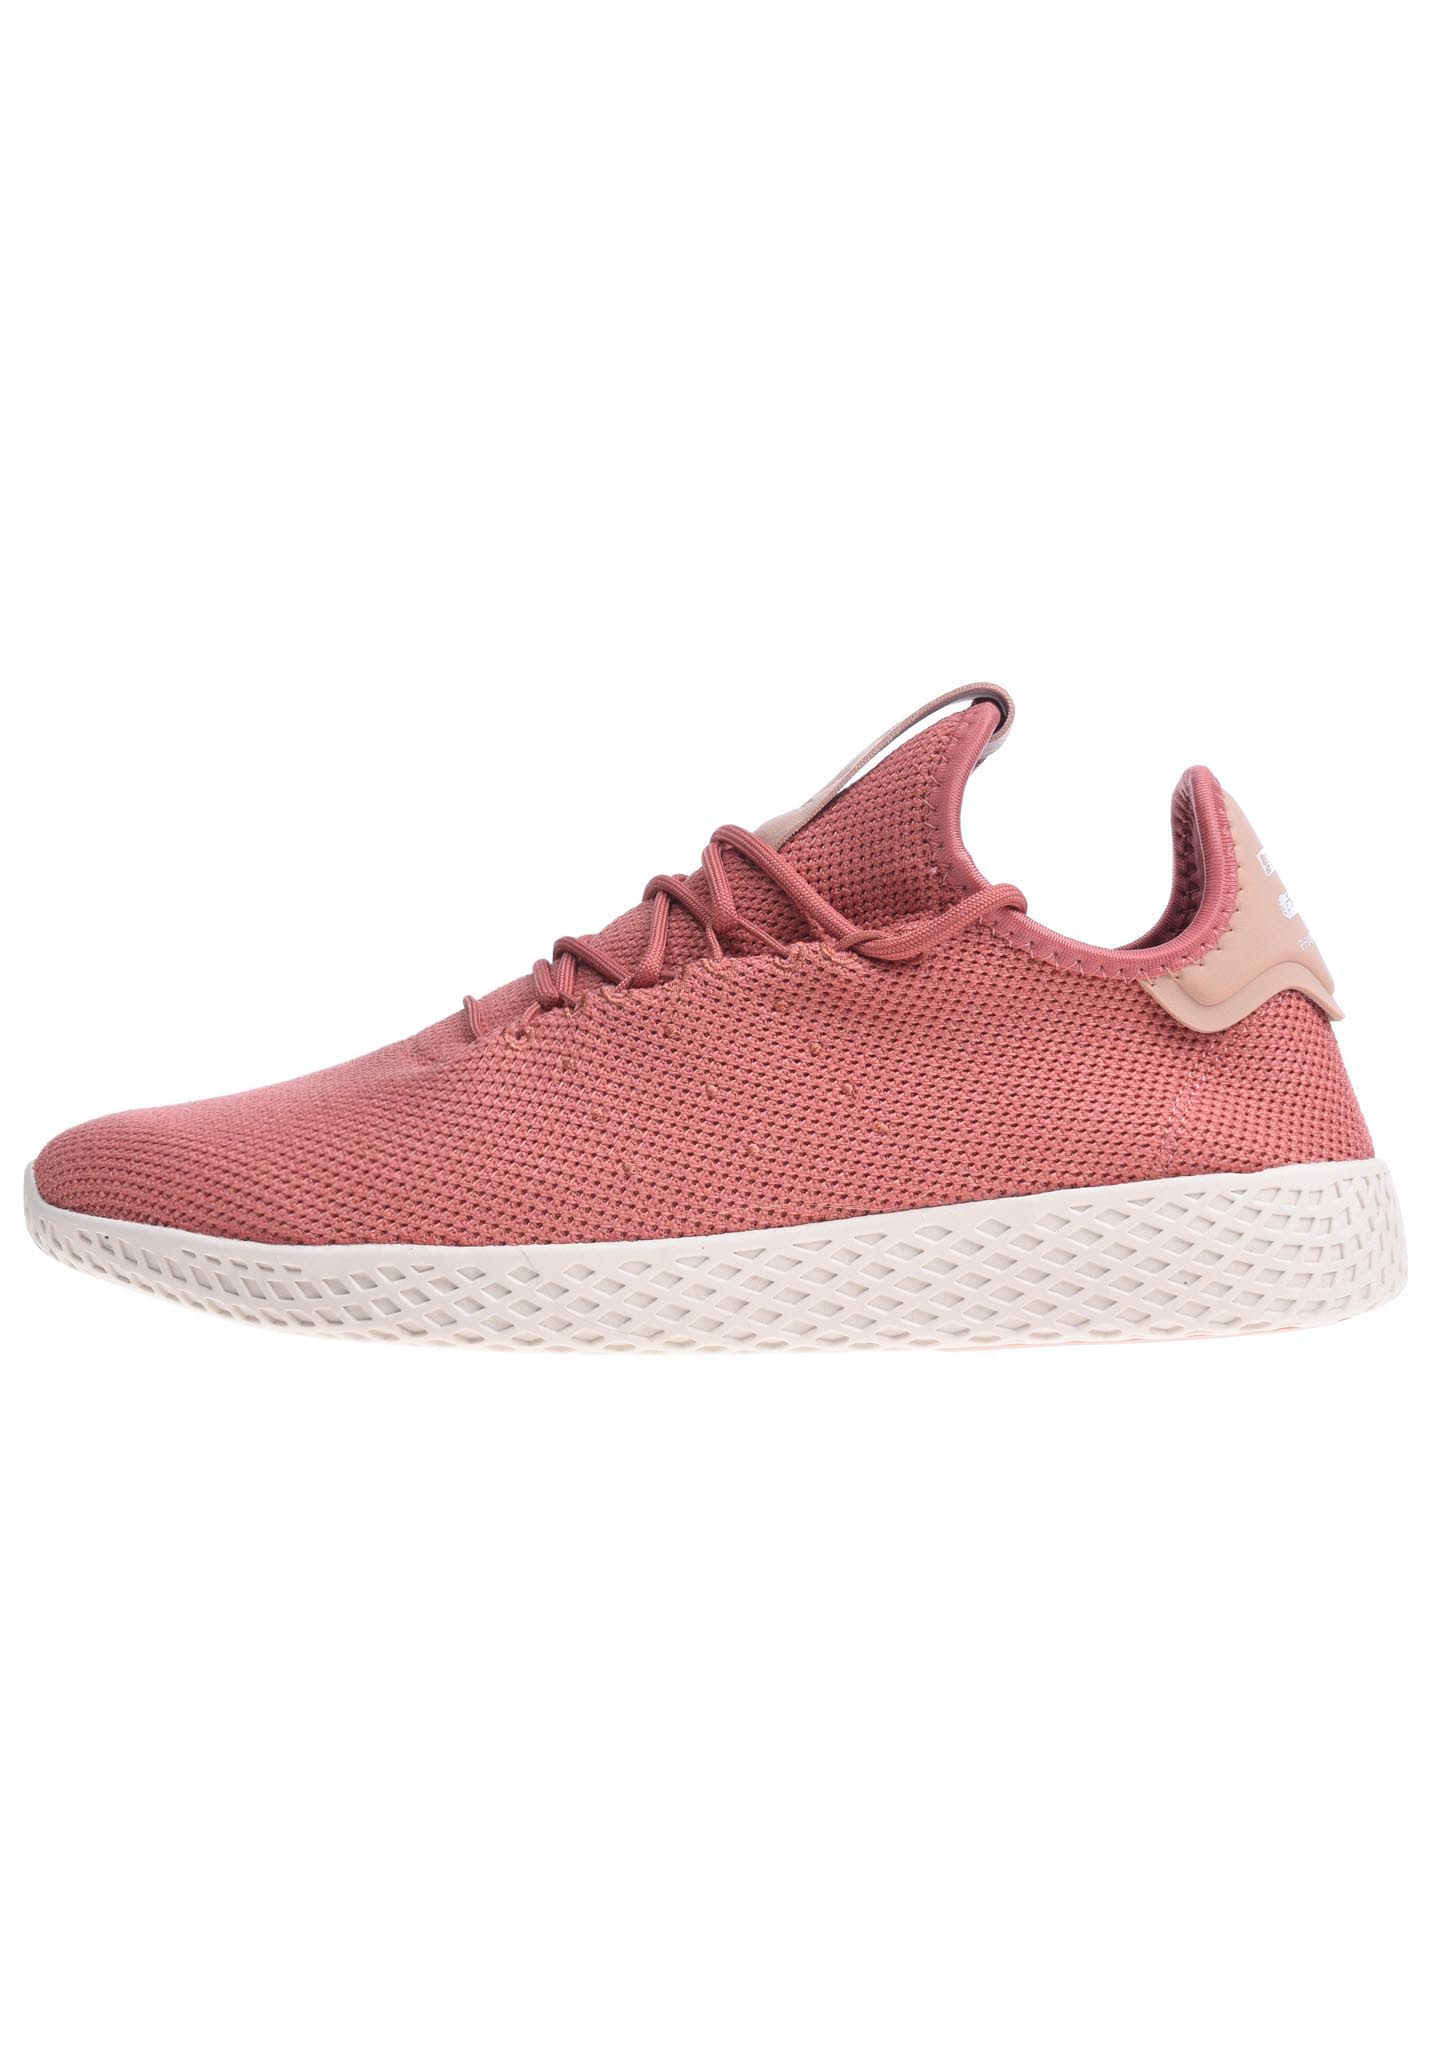 bc803661c17af ADIDAS ORIGINALS Pharrell Williams Tennis Hu - Sneakers for Women - Pink -  Planet Sports